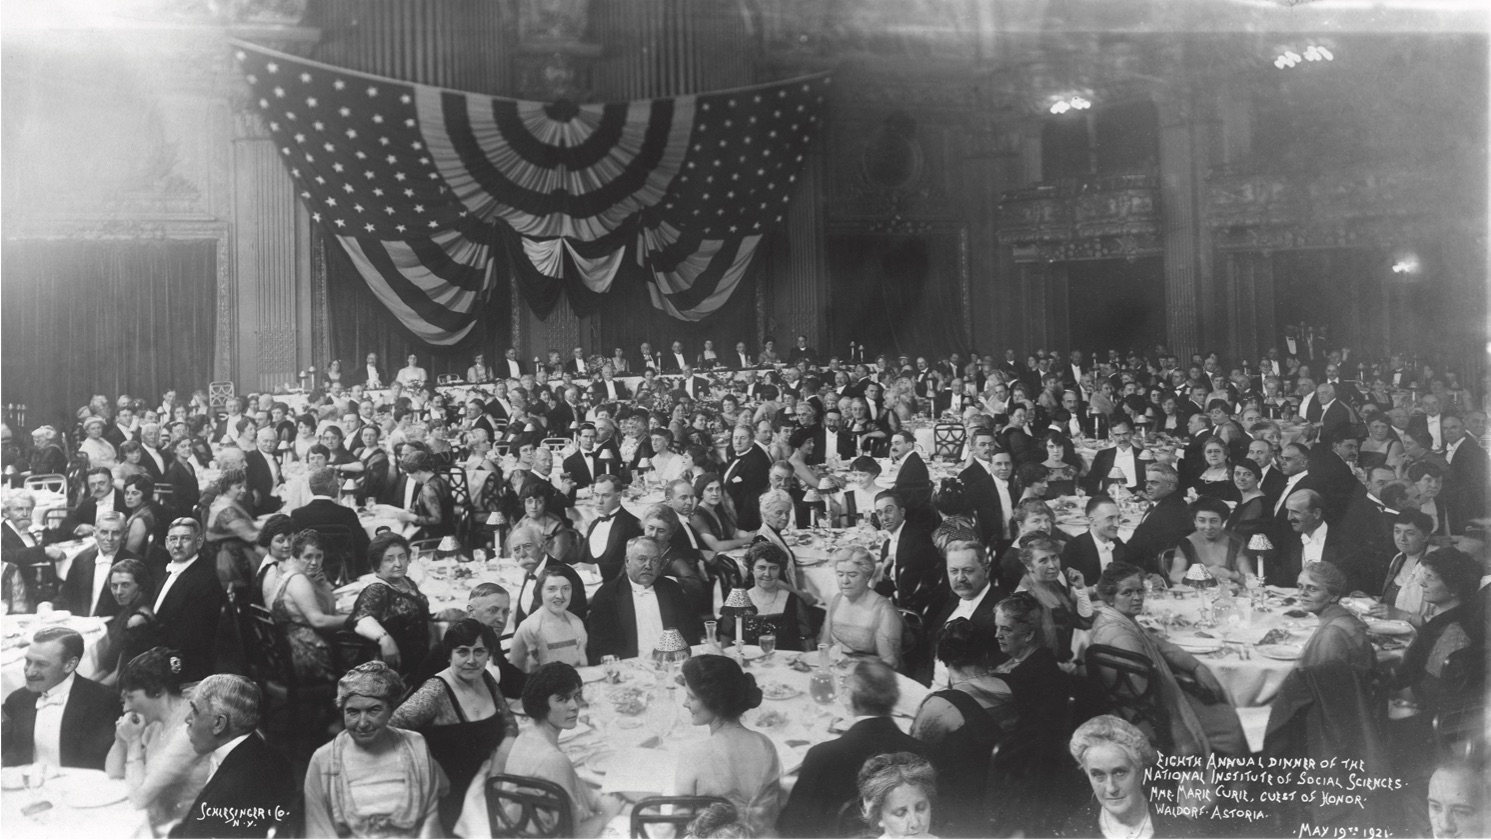 The 1921 Gold Medal Dinner honored Charles Frederick Chandler, Calvin Coolidge, Marie Curie, and Cleveland H. Dodge.